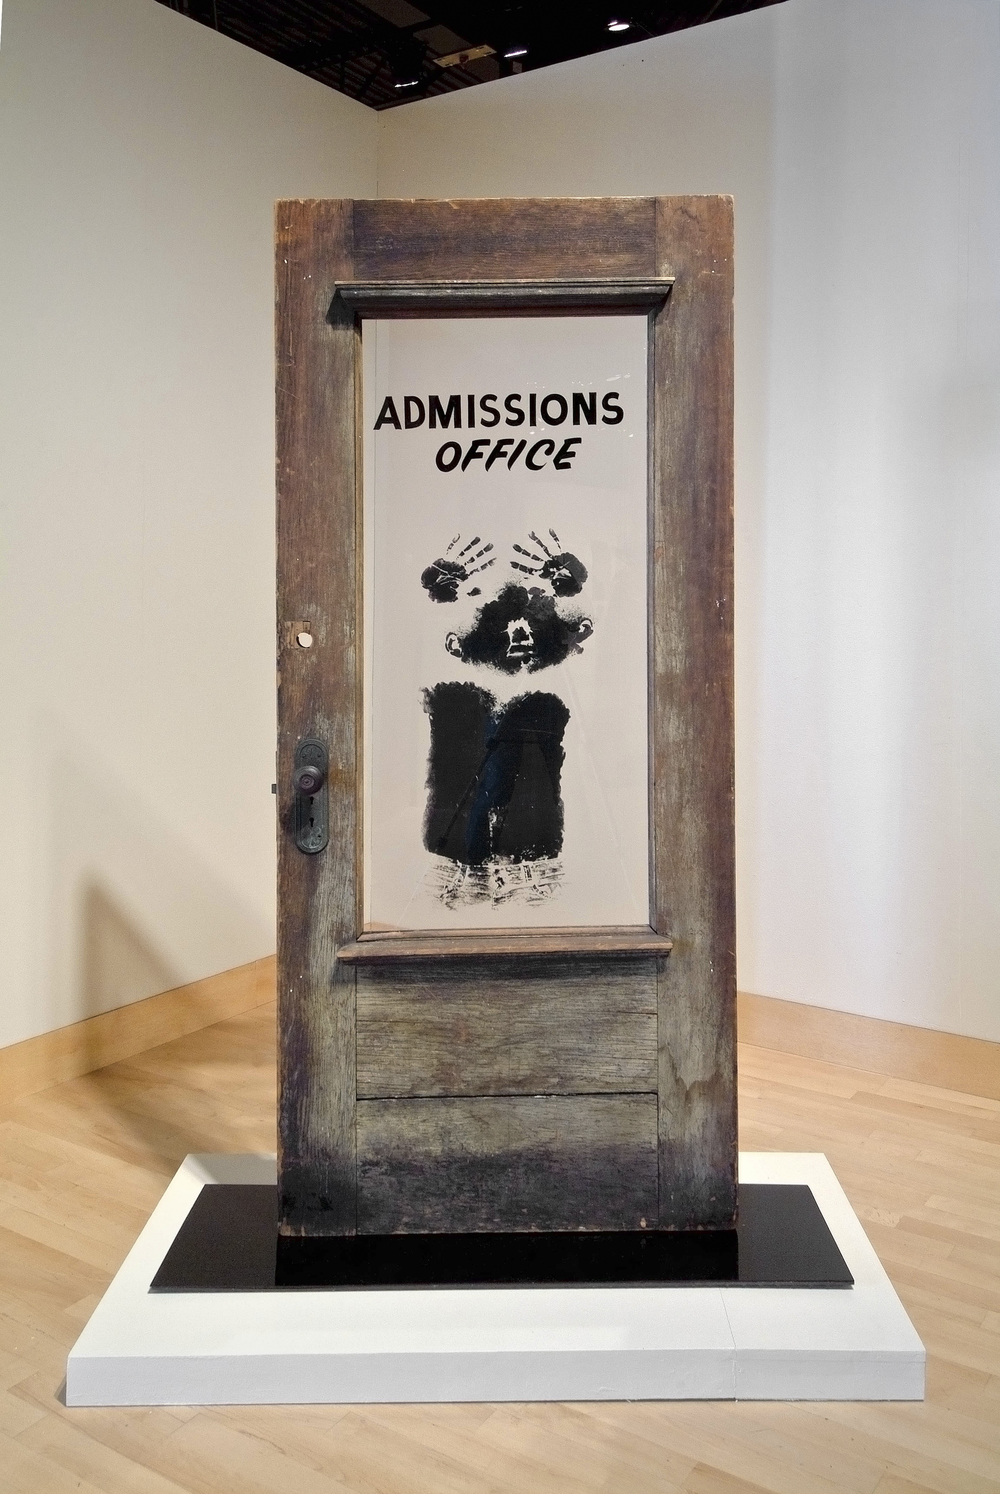 David Hammons (American, born 1943). The Door (Admissions Office), 1969. Wood, acrylic sheet, and pigment construction, 79 x 48 x 15 in. (200.7 x 122 x 38.1 cm). California African American Museum, Los Angeles, Collection of Friends, the Foundation of the California African American Museum. © David Hammons   Witness: Art and Civil Rights in the Sixties is organized by the Brooklyn Museum